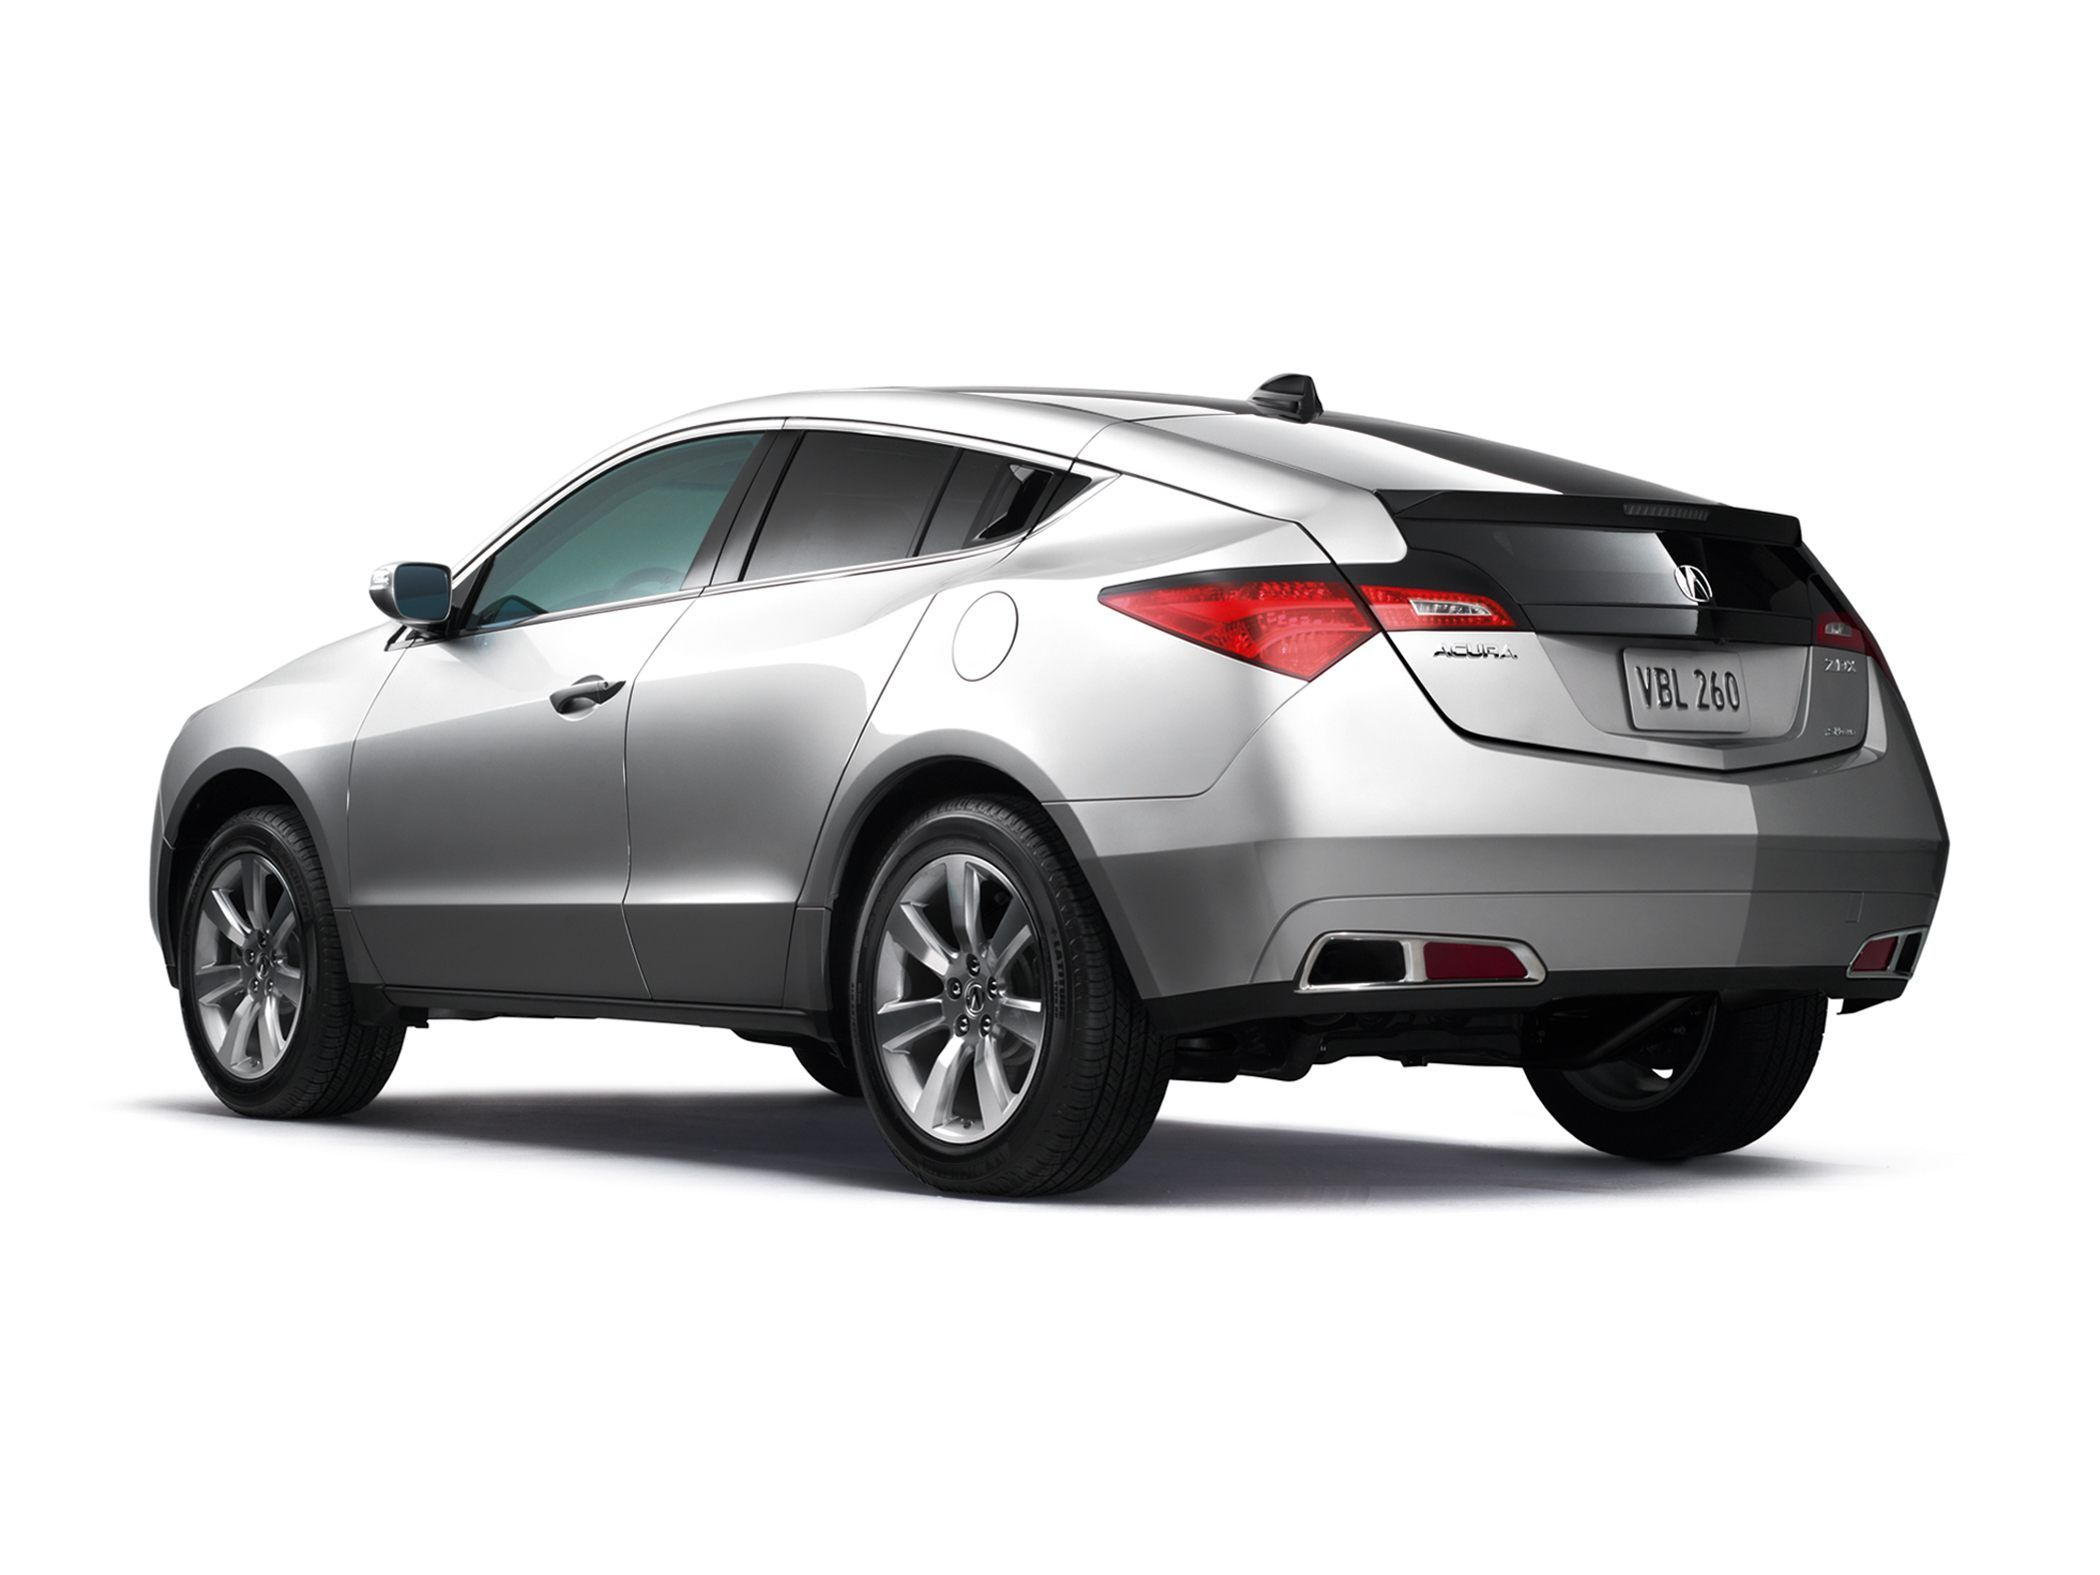 Acura SUV Wallpapers Backgrounds